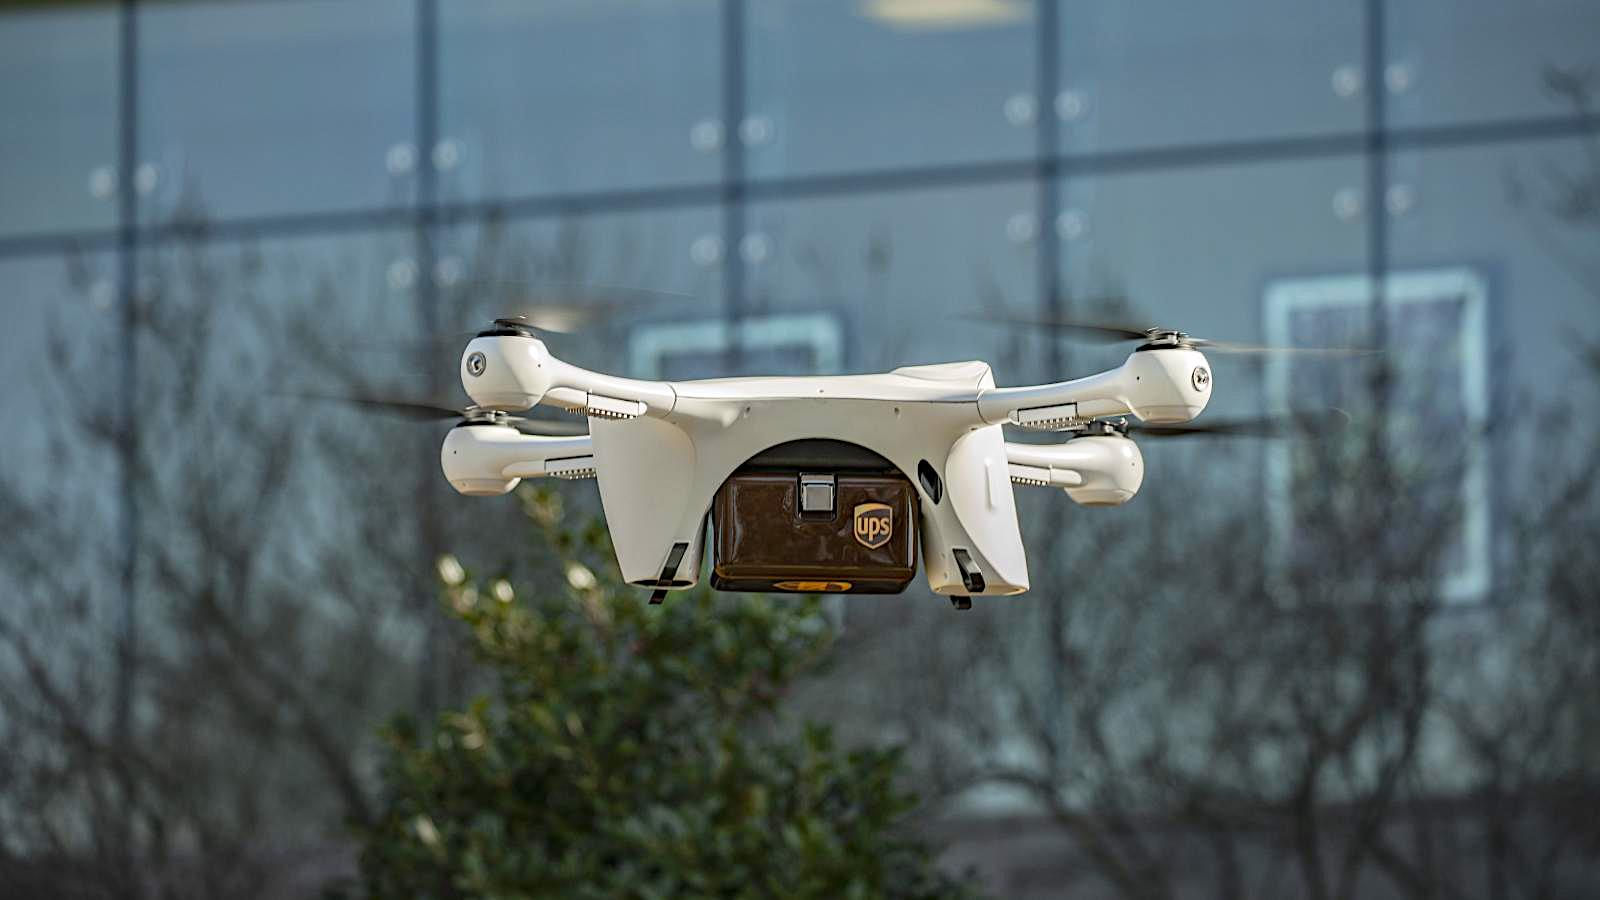 UPS teams up with drone companies on Covid-19 fight